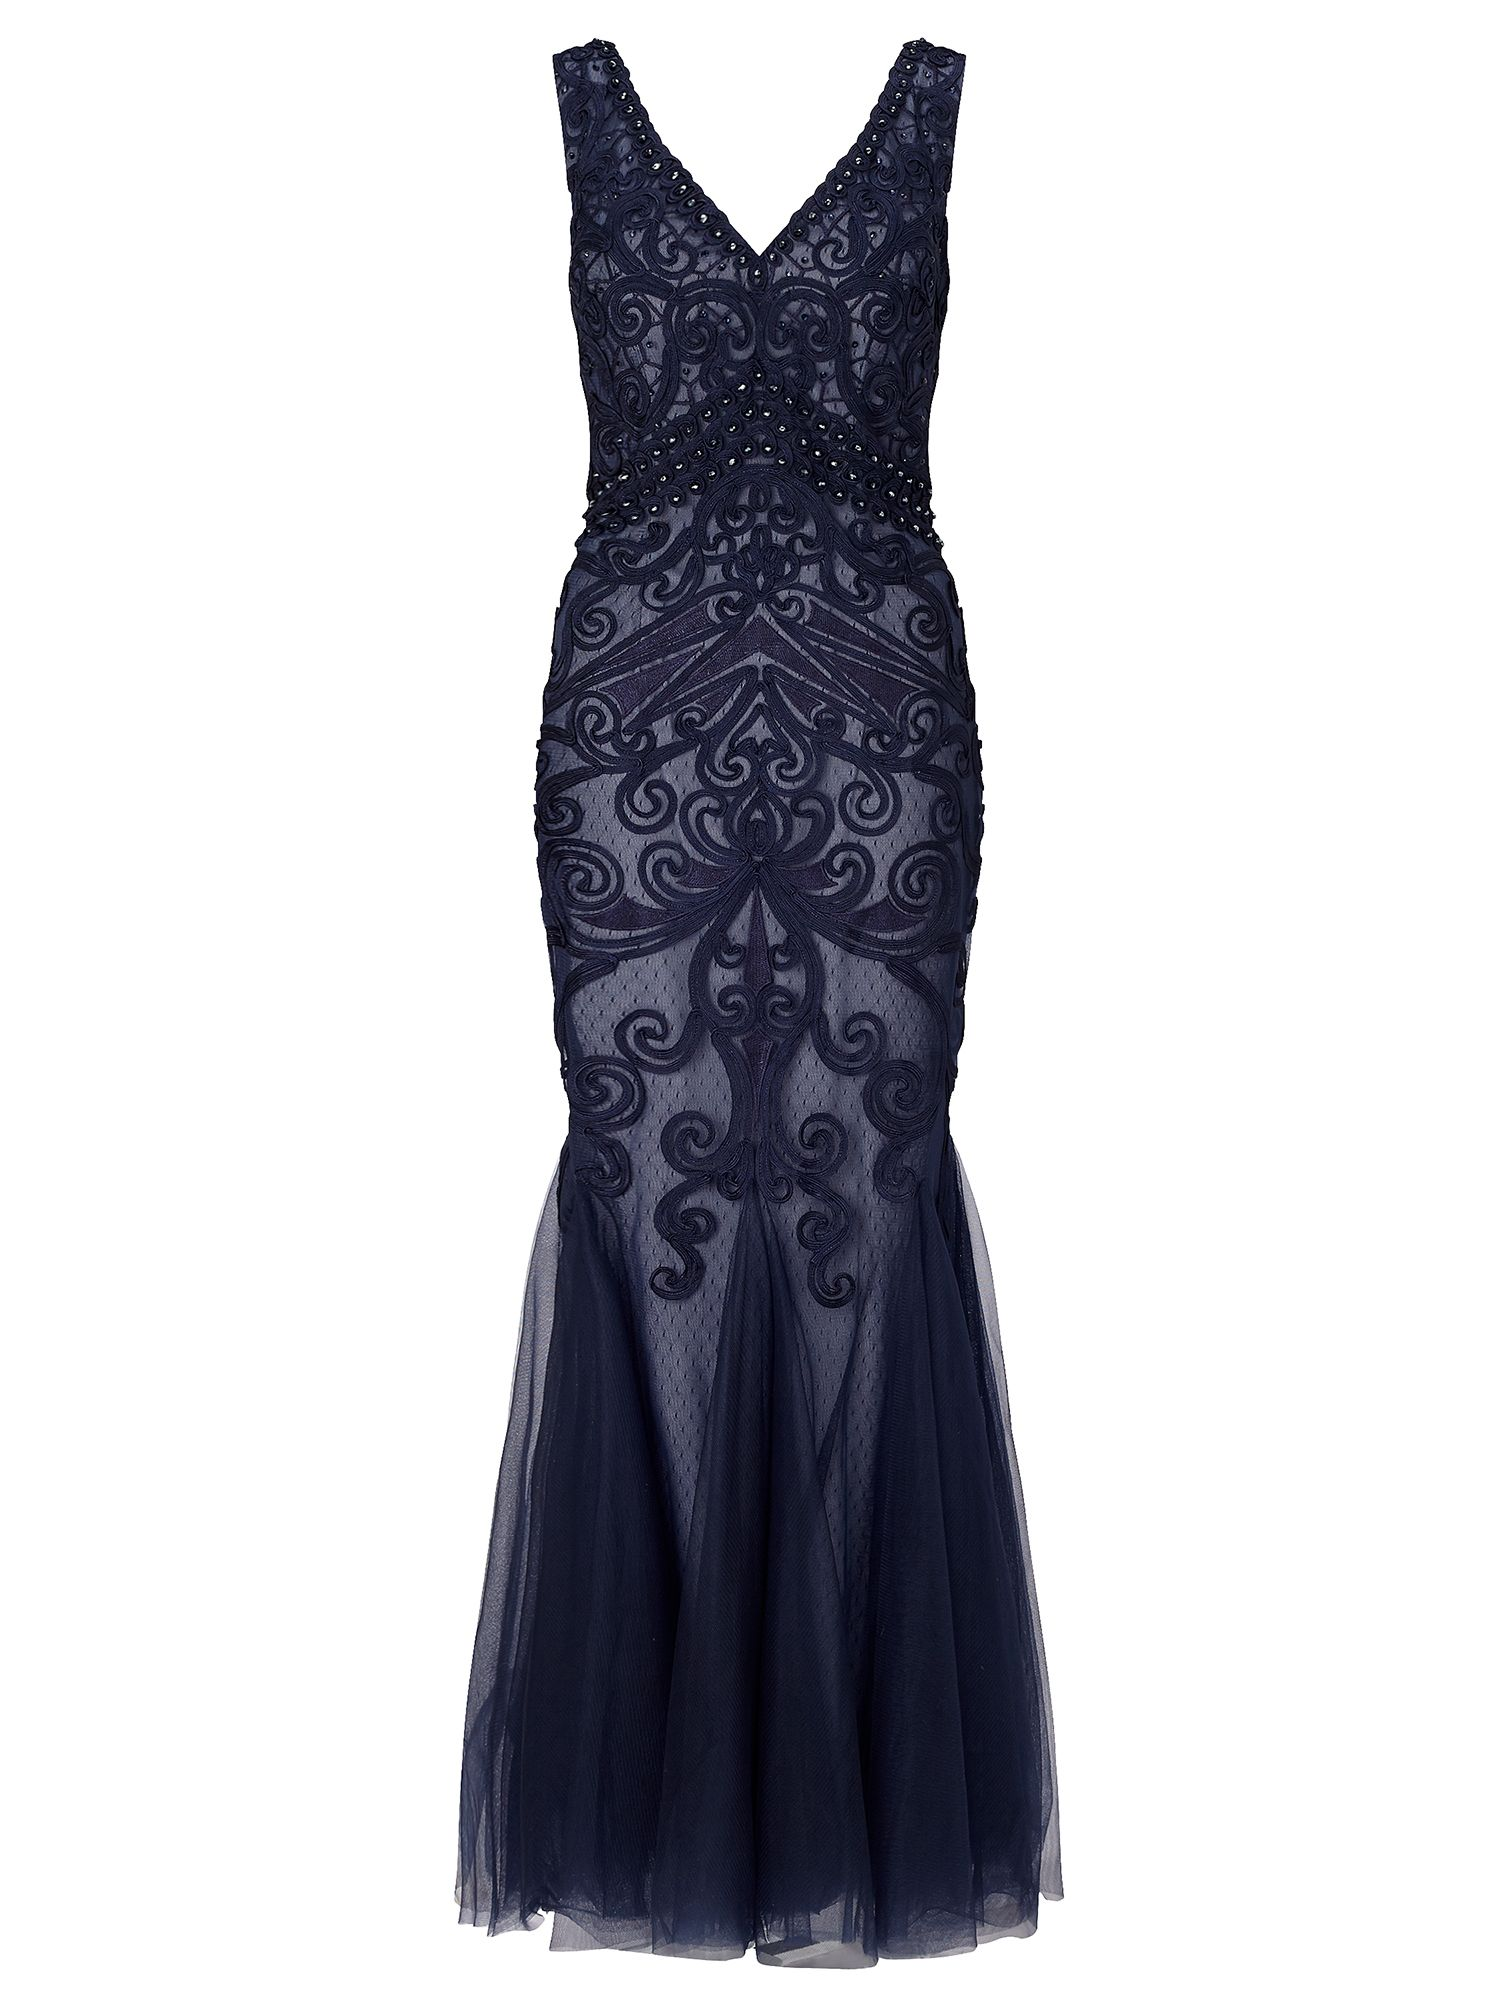 Buy Boardwalk Empire Inspired Dresses Ariella Dallas beaded mesh maxi with tapework Navy £395.00 AT vintagedancer.com